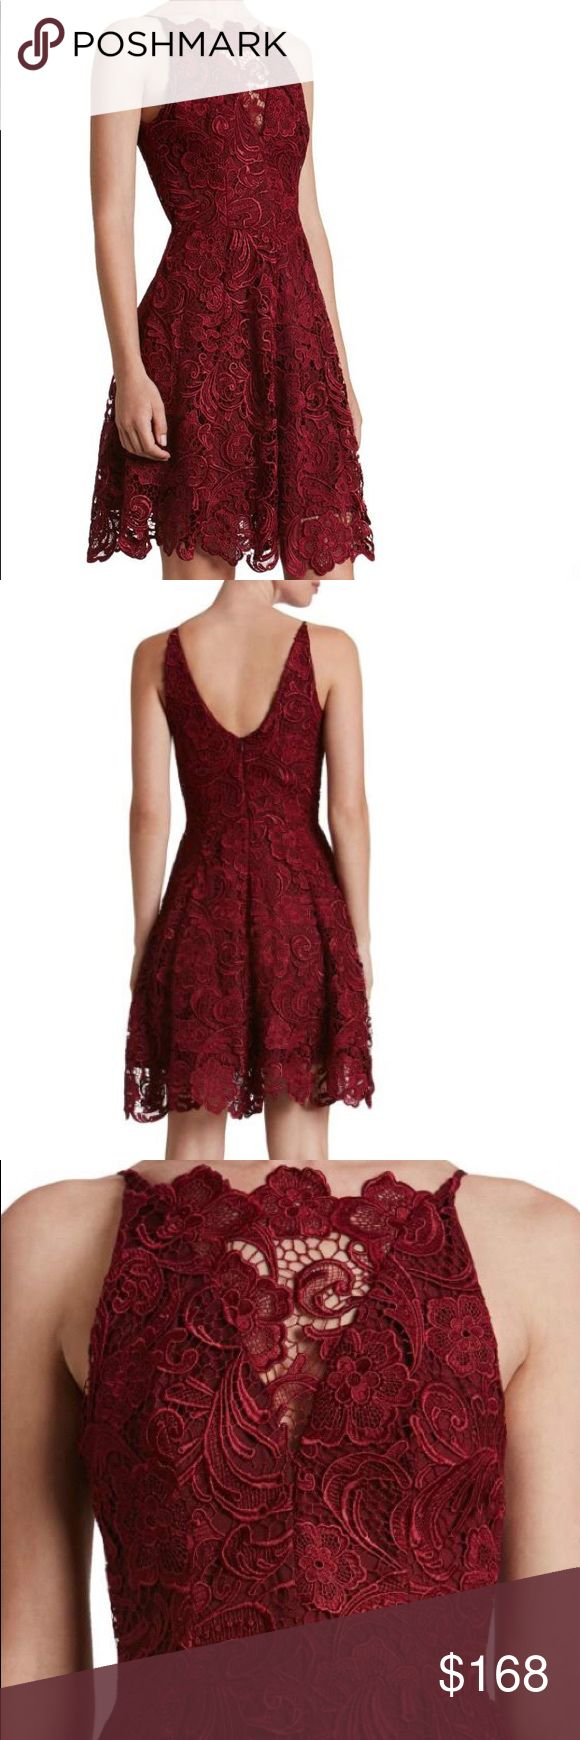 French Lace Fit & Flare Mini Dress NWT Hayden in deep berry red. Gorgeous heavy-weight guipure (French, crochet-like) lace. Fit and flare mini skirt - not super short - with illusion hemline. Deep v neckline with illusion panel. Very feminine. Perfect for special occasions and formal events, holiday, wedding guest, bridesmaid, party, cocktail, etc. size small typically fits 0 - 2. Inquire for specific measurements or additional pictures. Dress the Population Dresses Mini